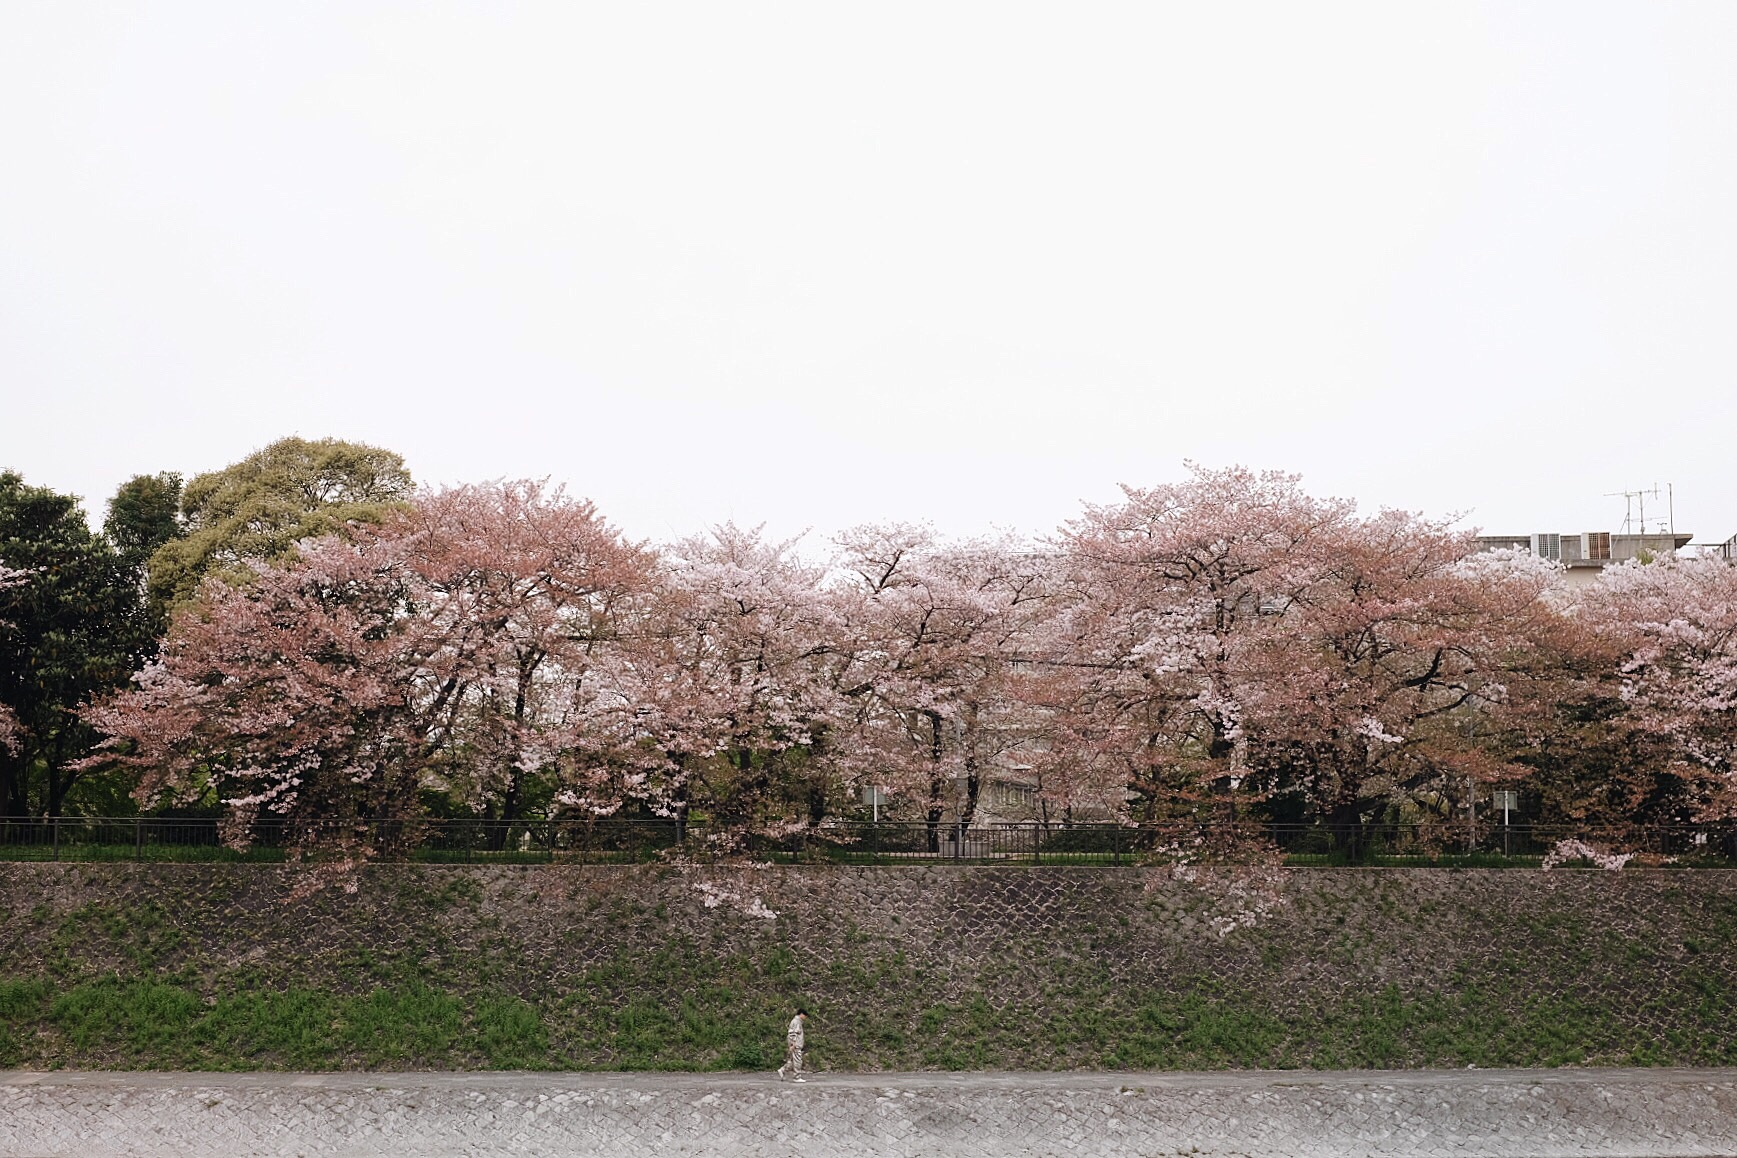 Cherry blossom trees along the Kamo River in Kyoto.